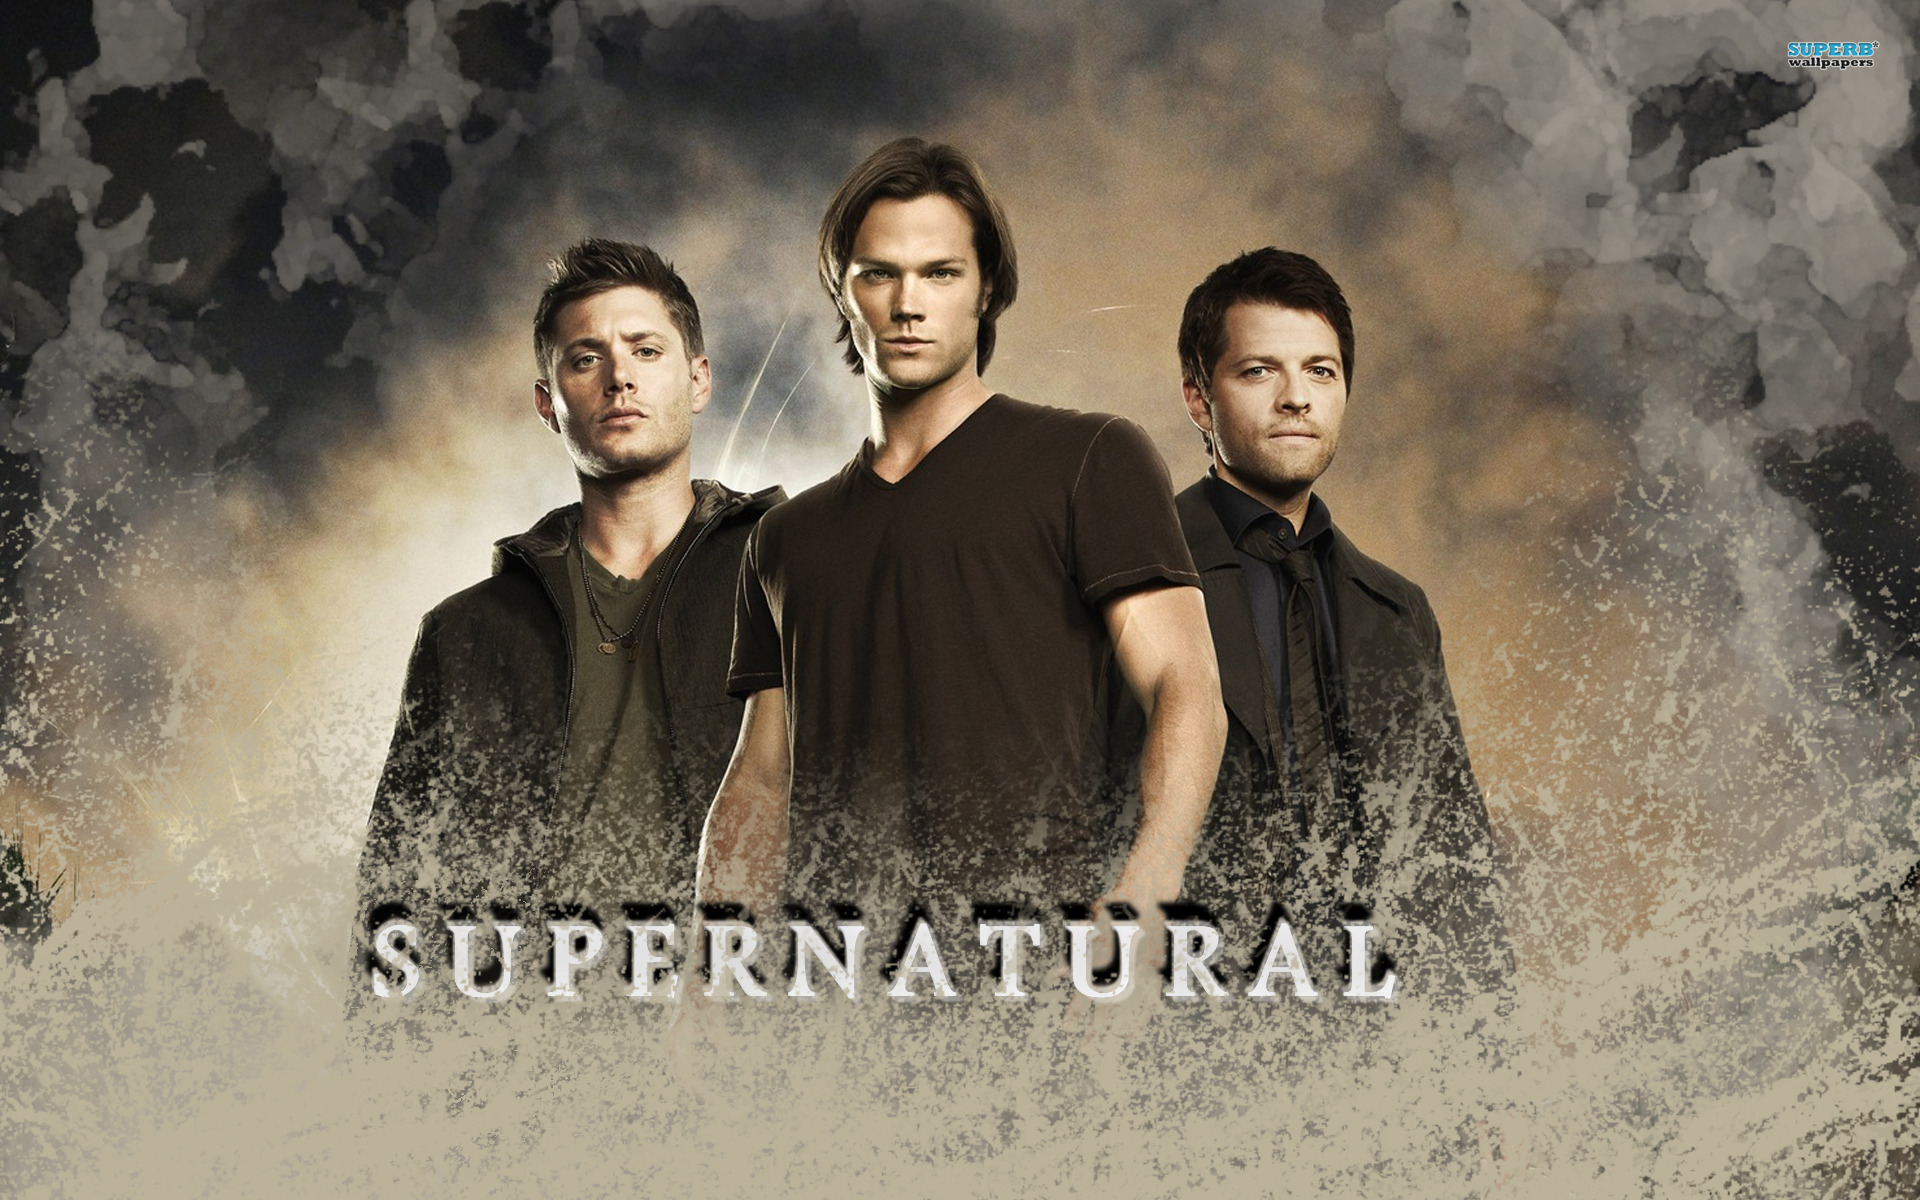 supernatural wallpapers desktop hd - HD Desktop Wallpapers ...